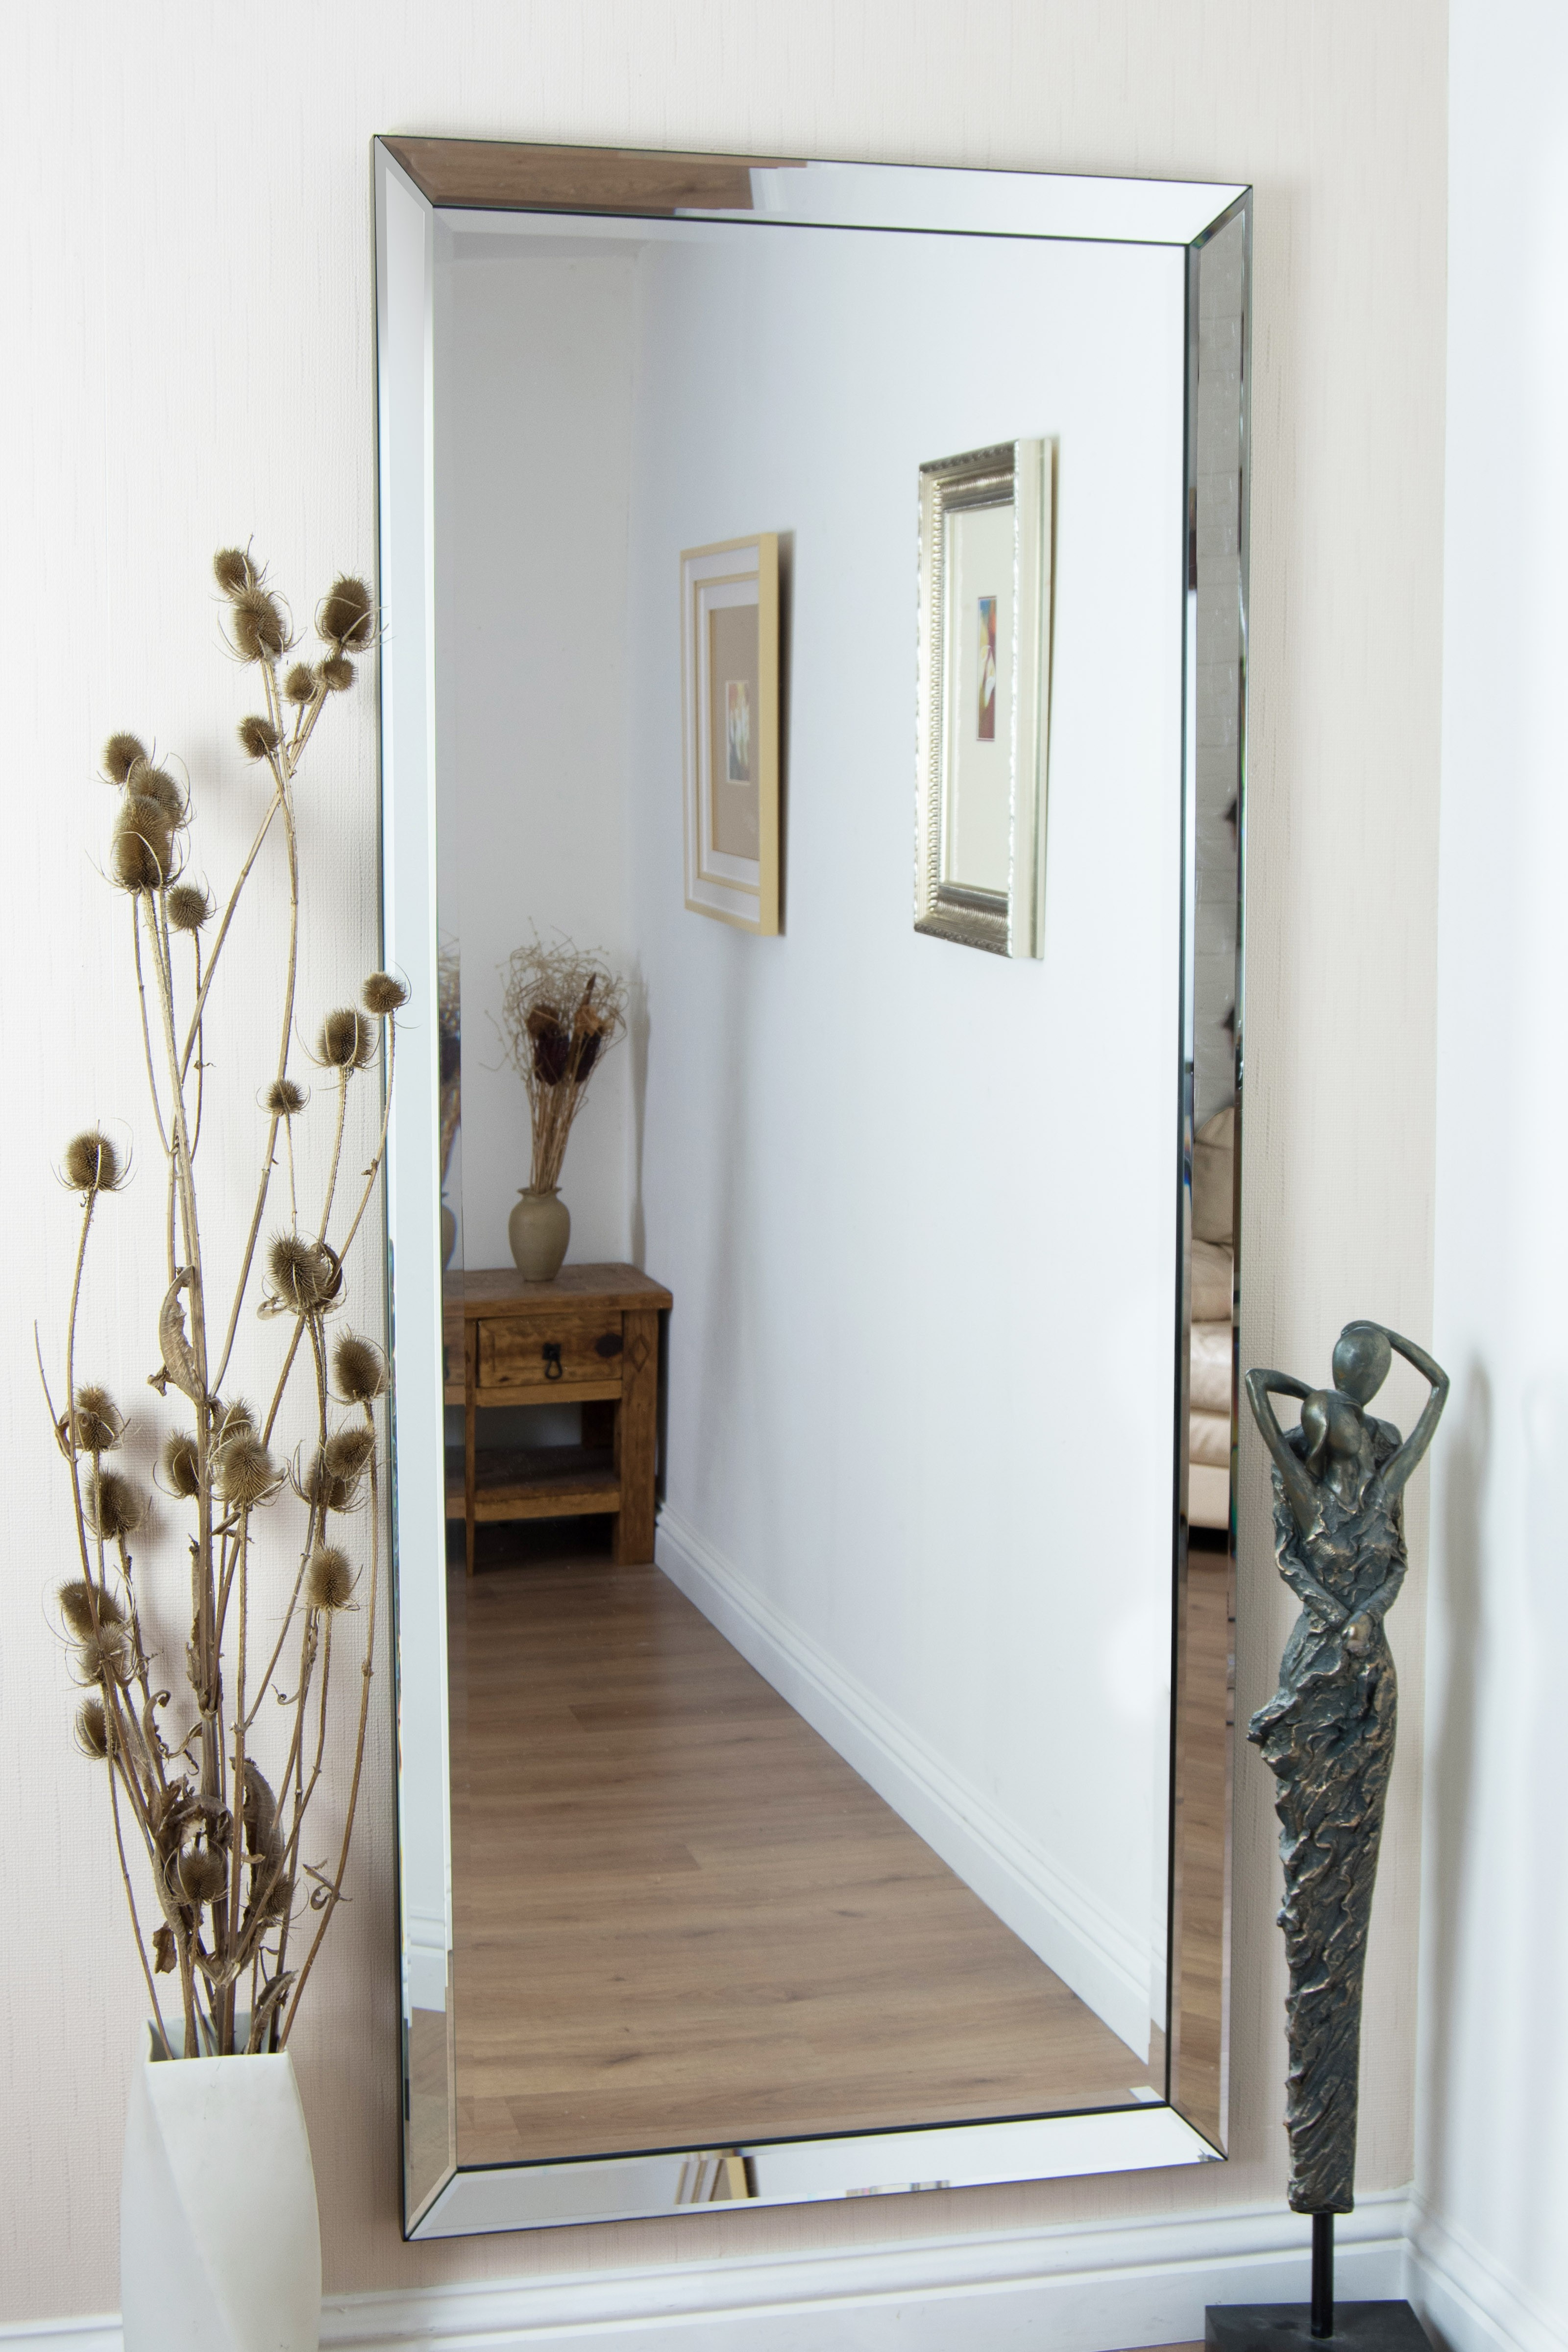 Full Length Decorative Wall Mirrors For Well Known Unique Full Length Wall Mirrors Photos Mirror Decorative Decoration (View 4 of 20)